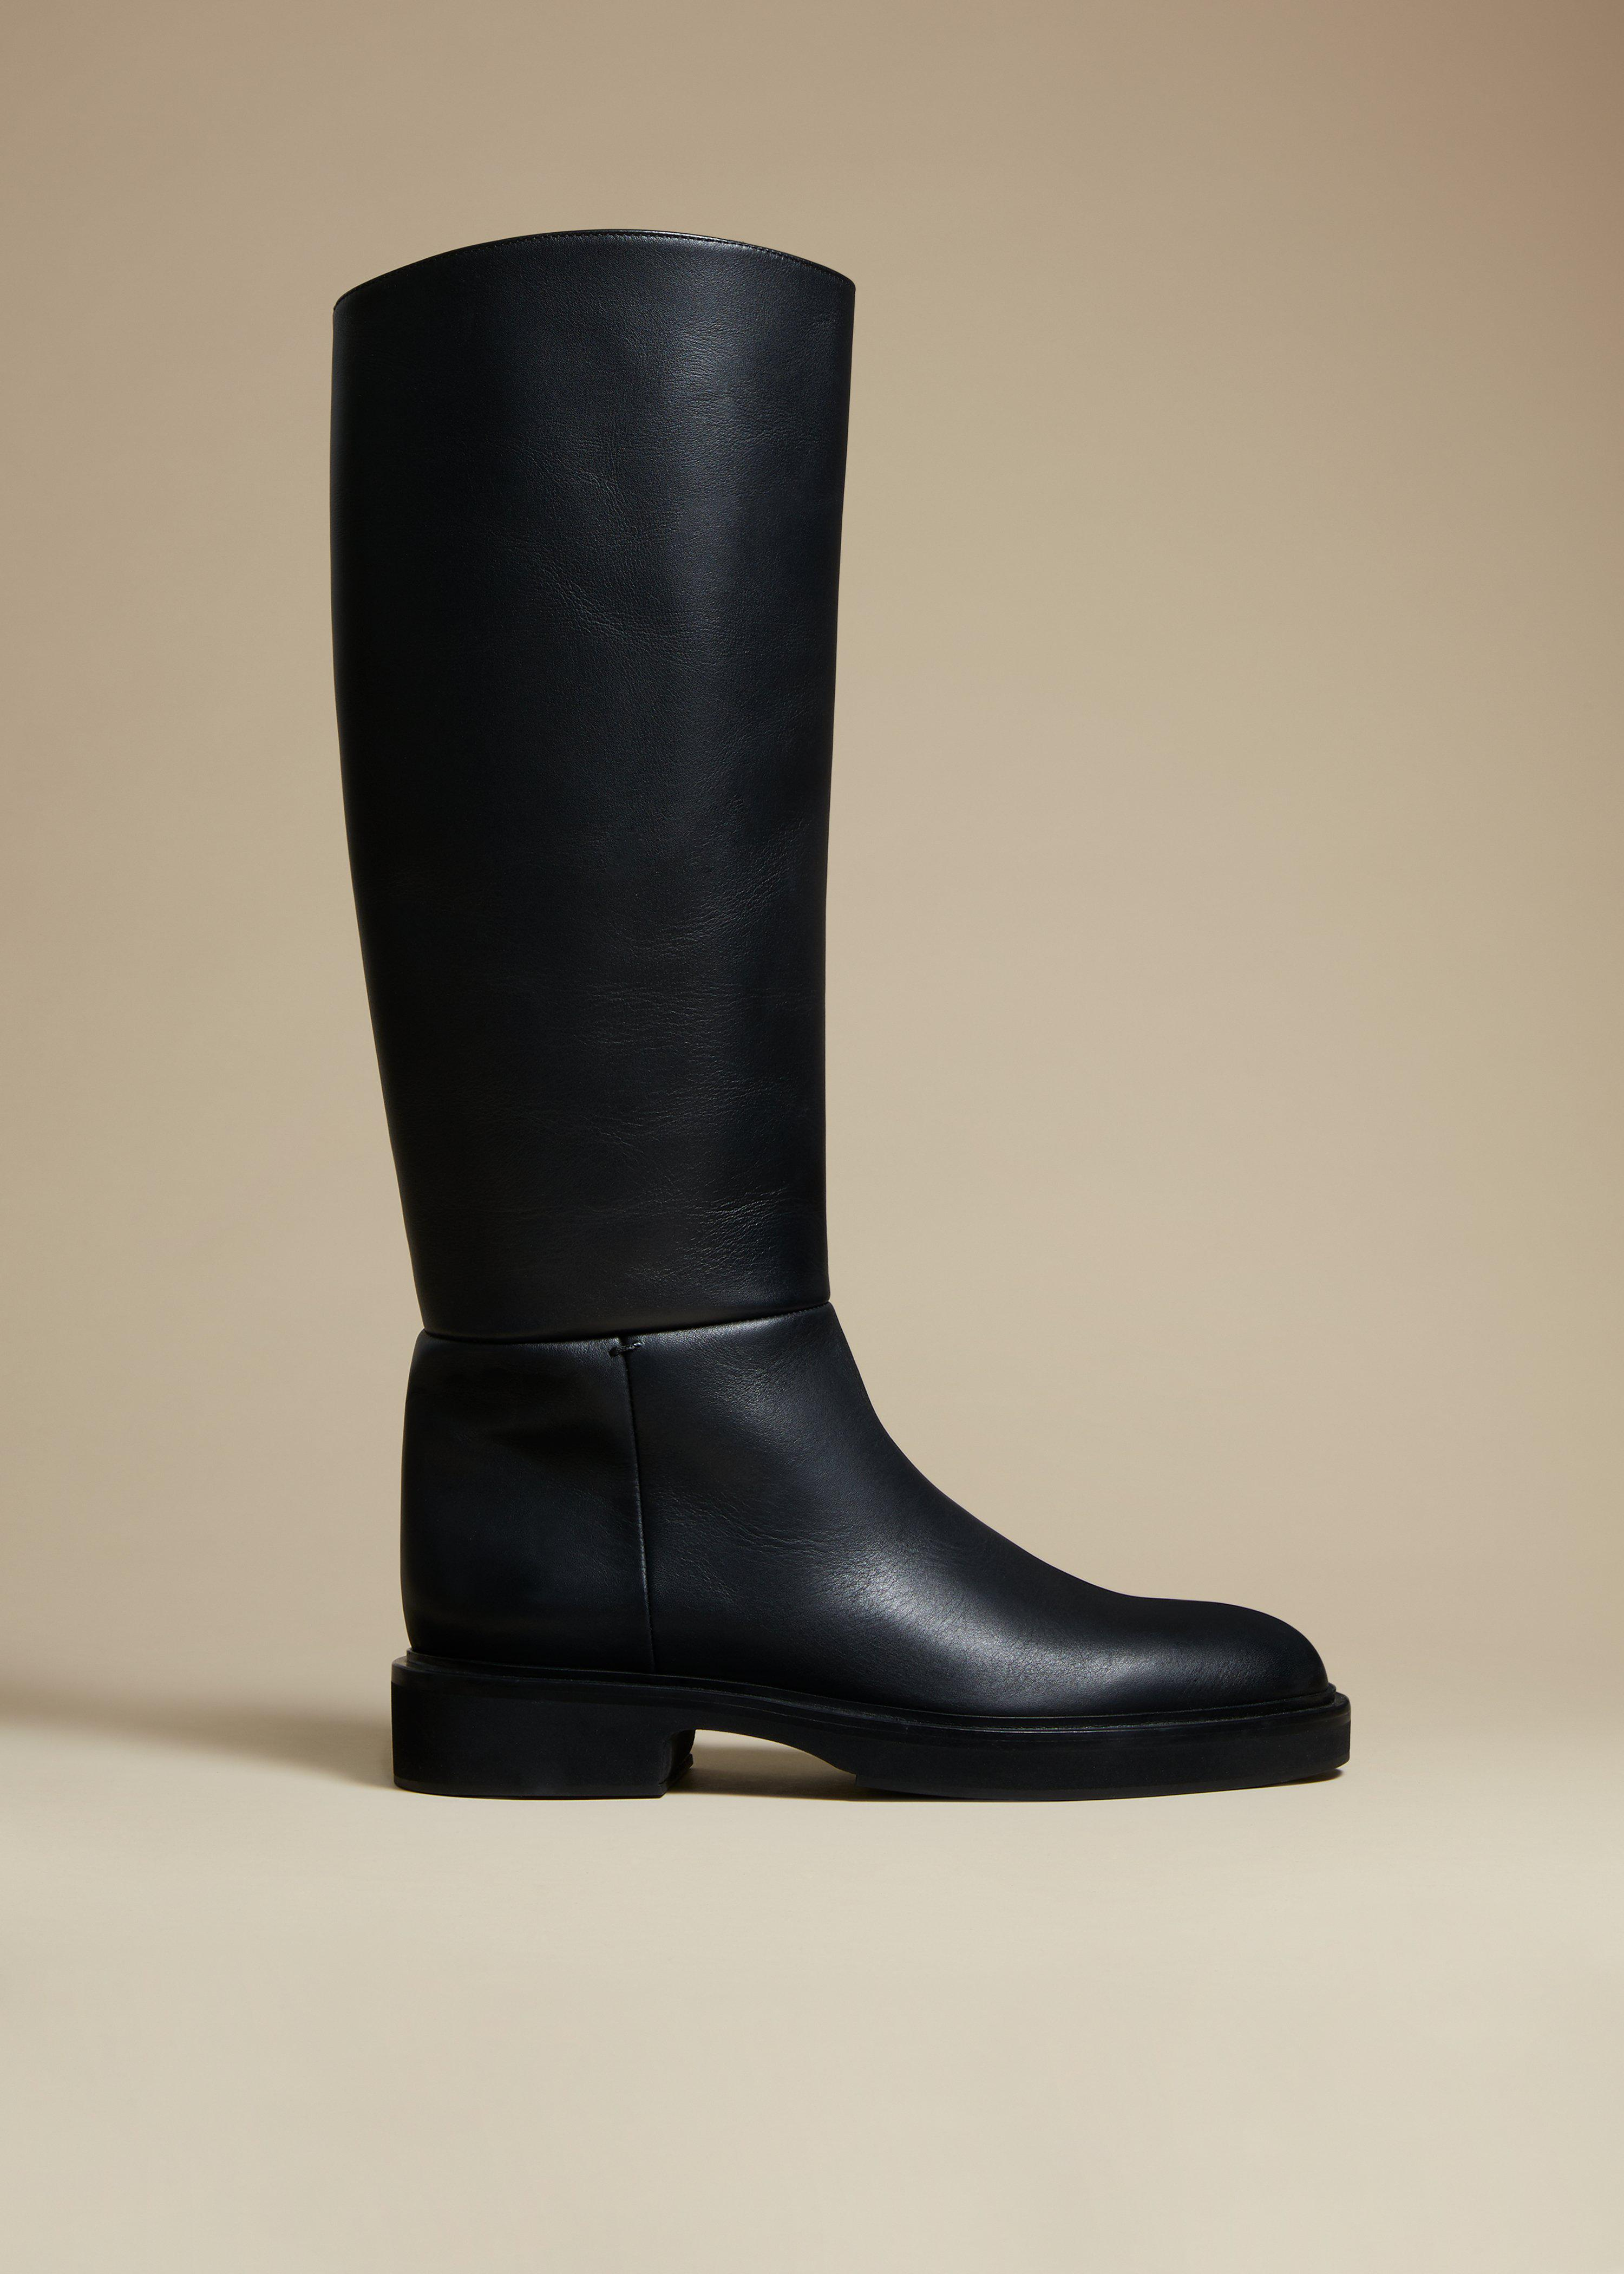 The Derby Boot in Black Leather